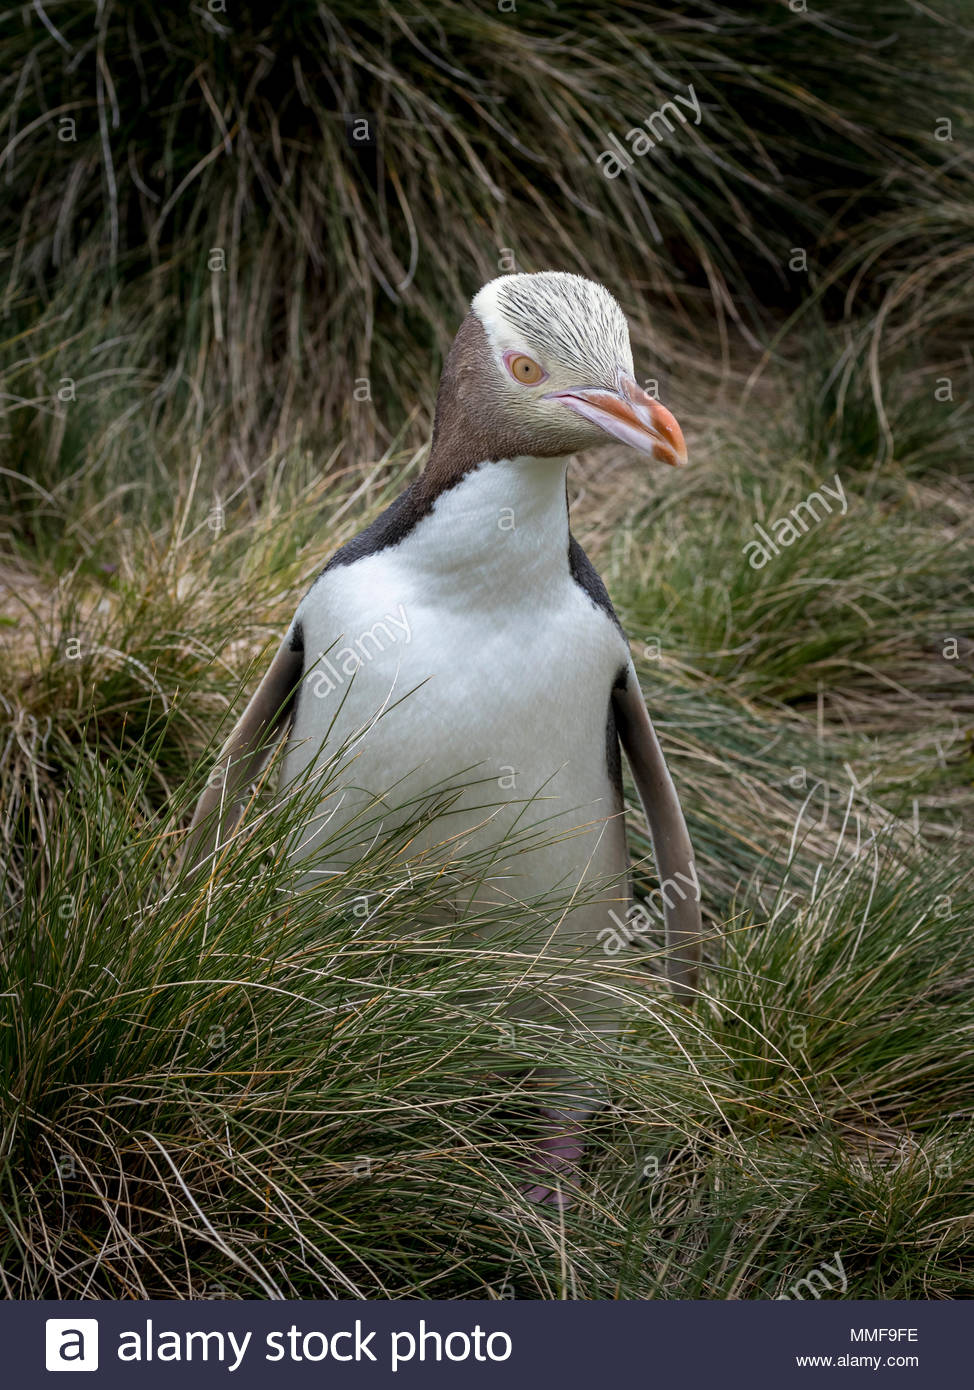 An endangered yellow-eyed penguin, Megadyptes antipodes, emerges from the grasses. Stock Photo